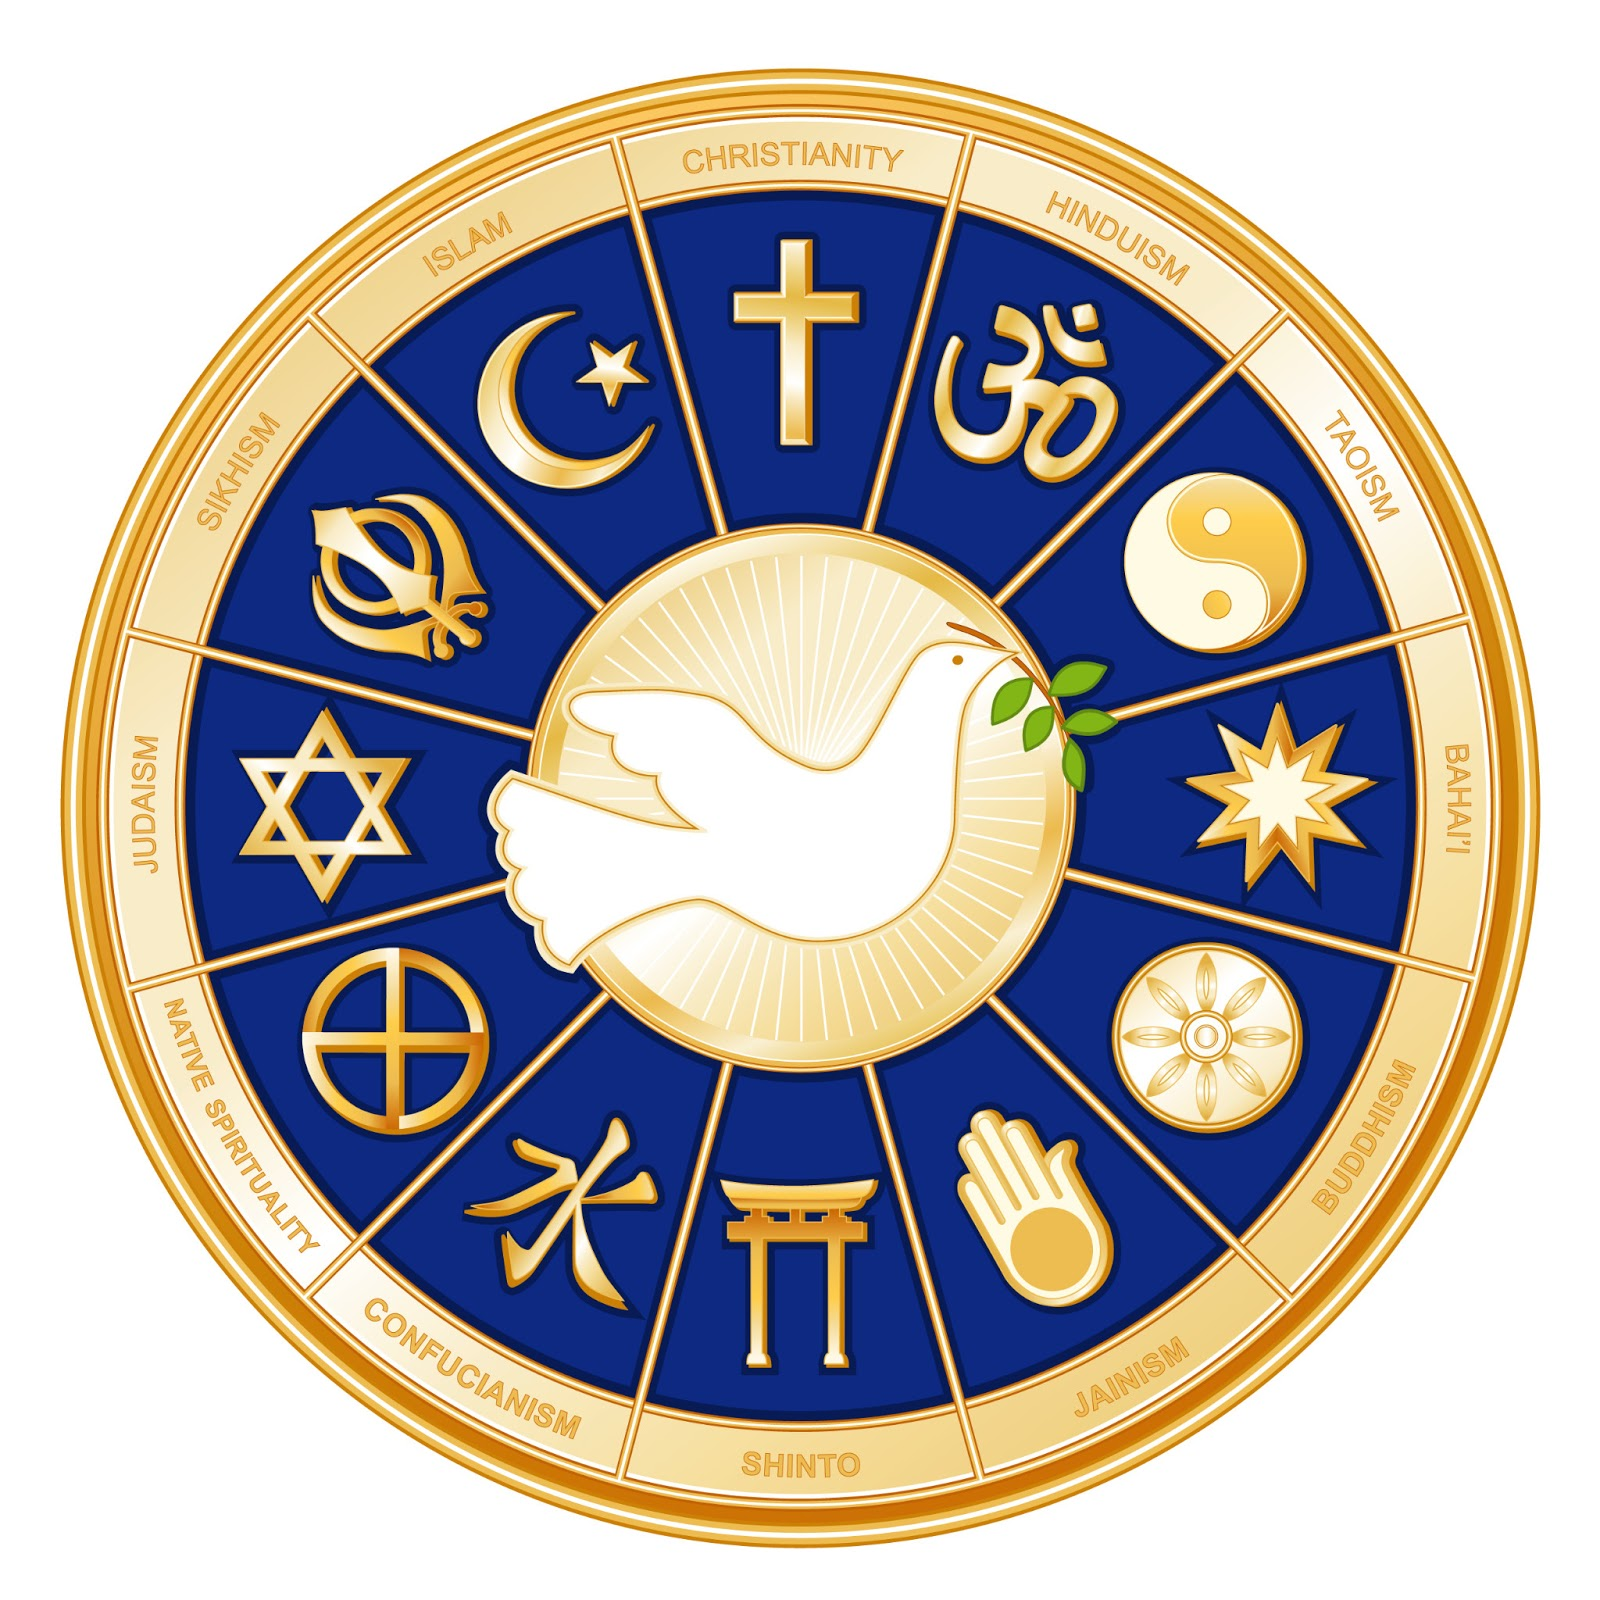 Religious Identity and Inclusion